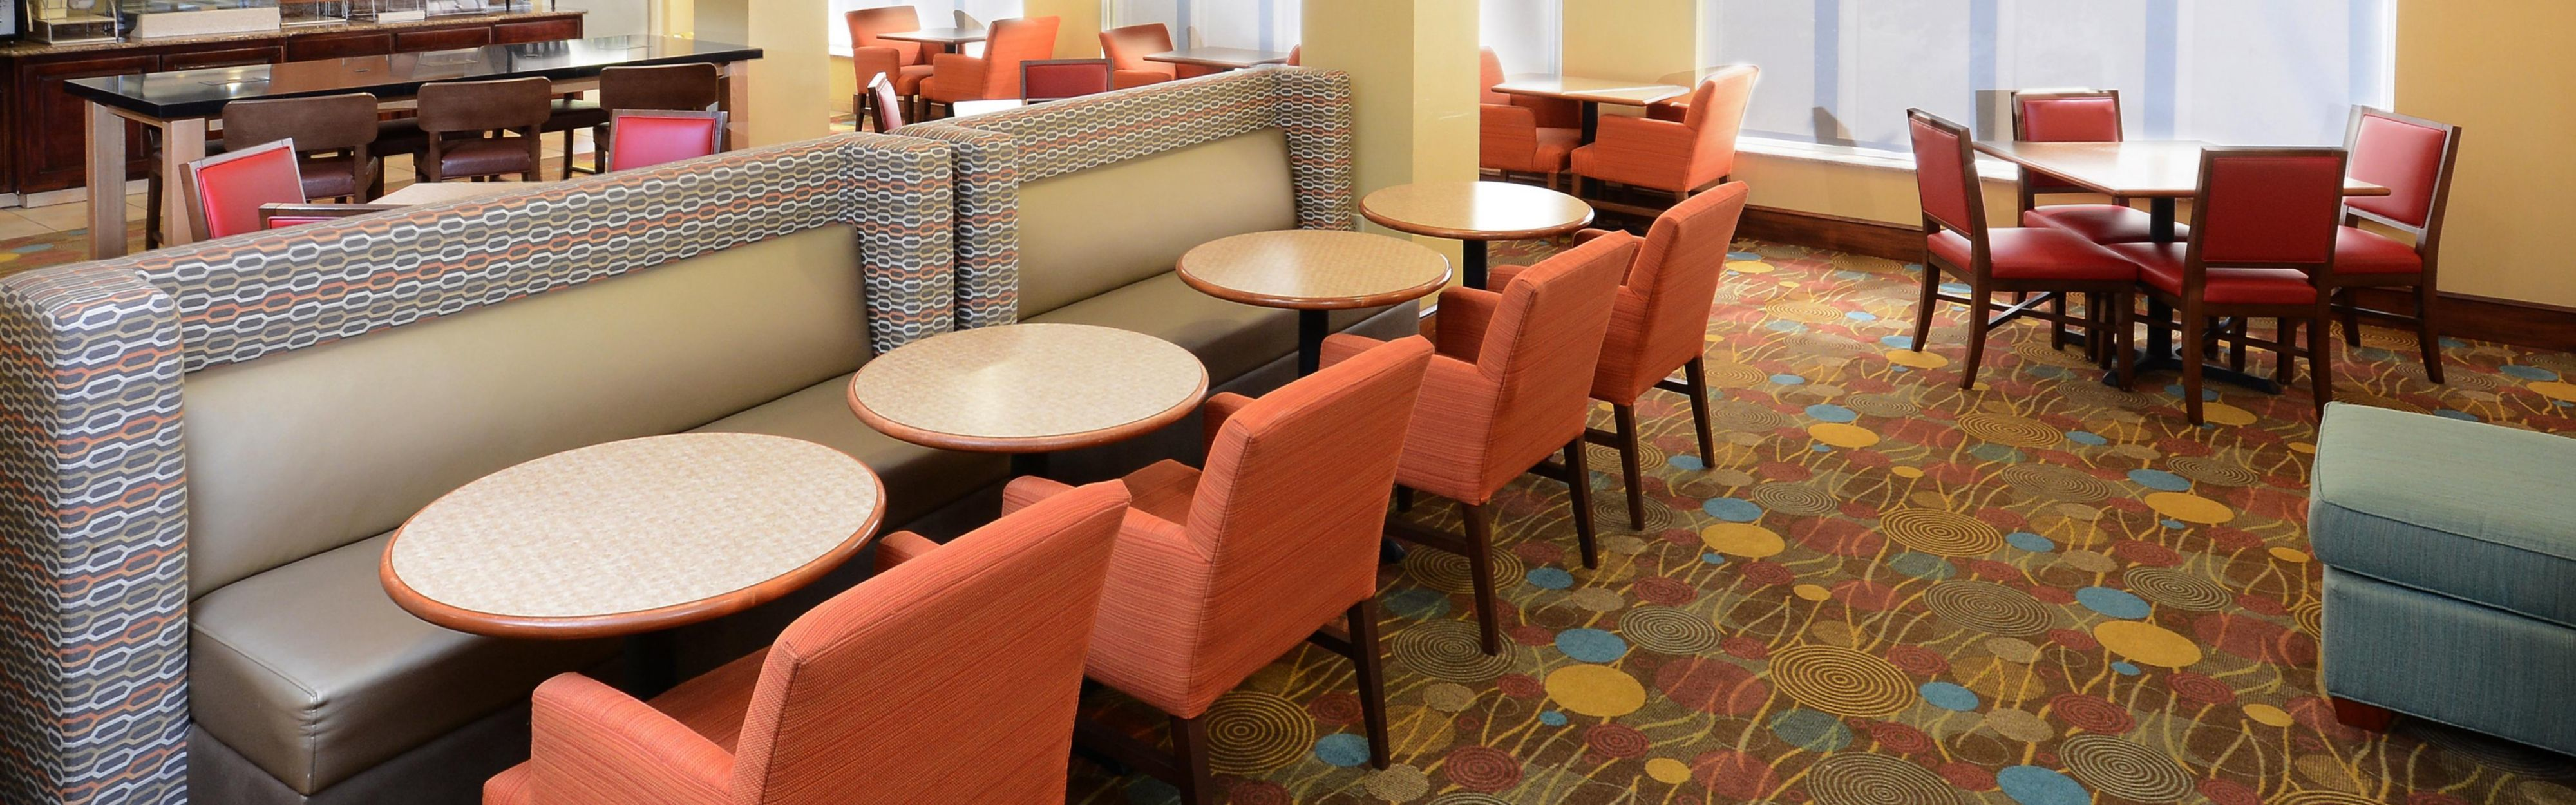 Holiday Inn Express & Suites Greensboro - Airport Area image 3